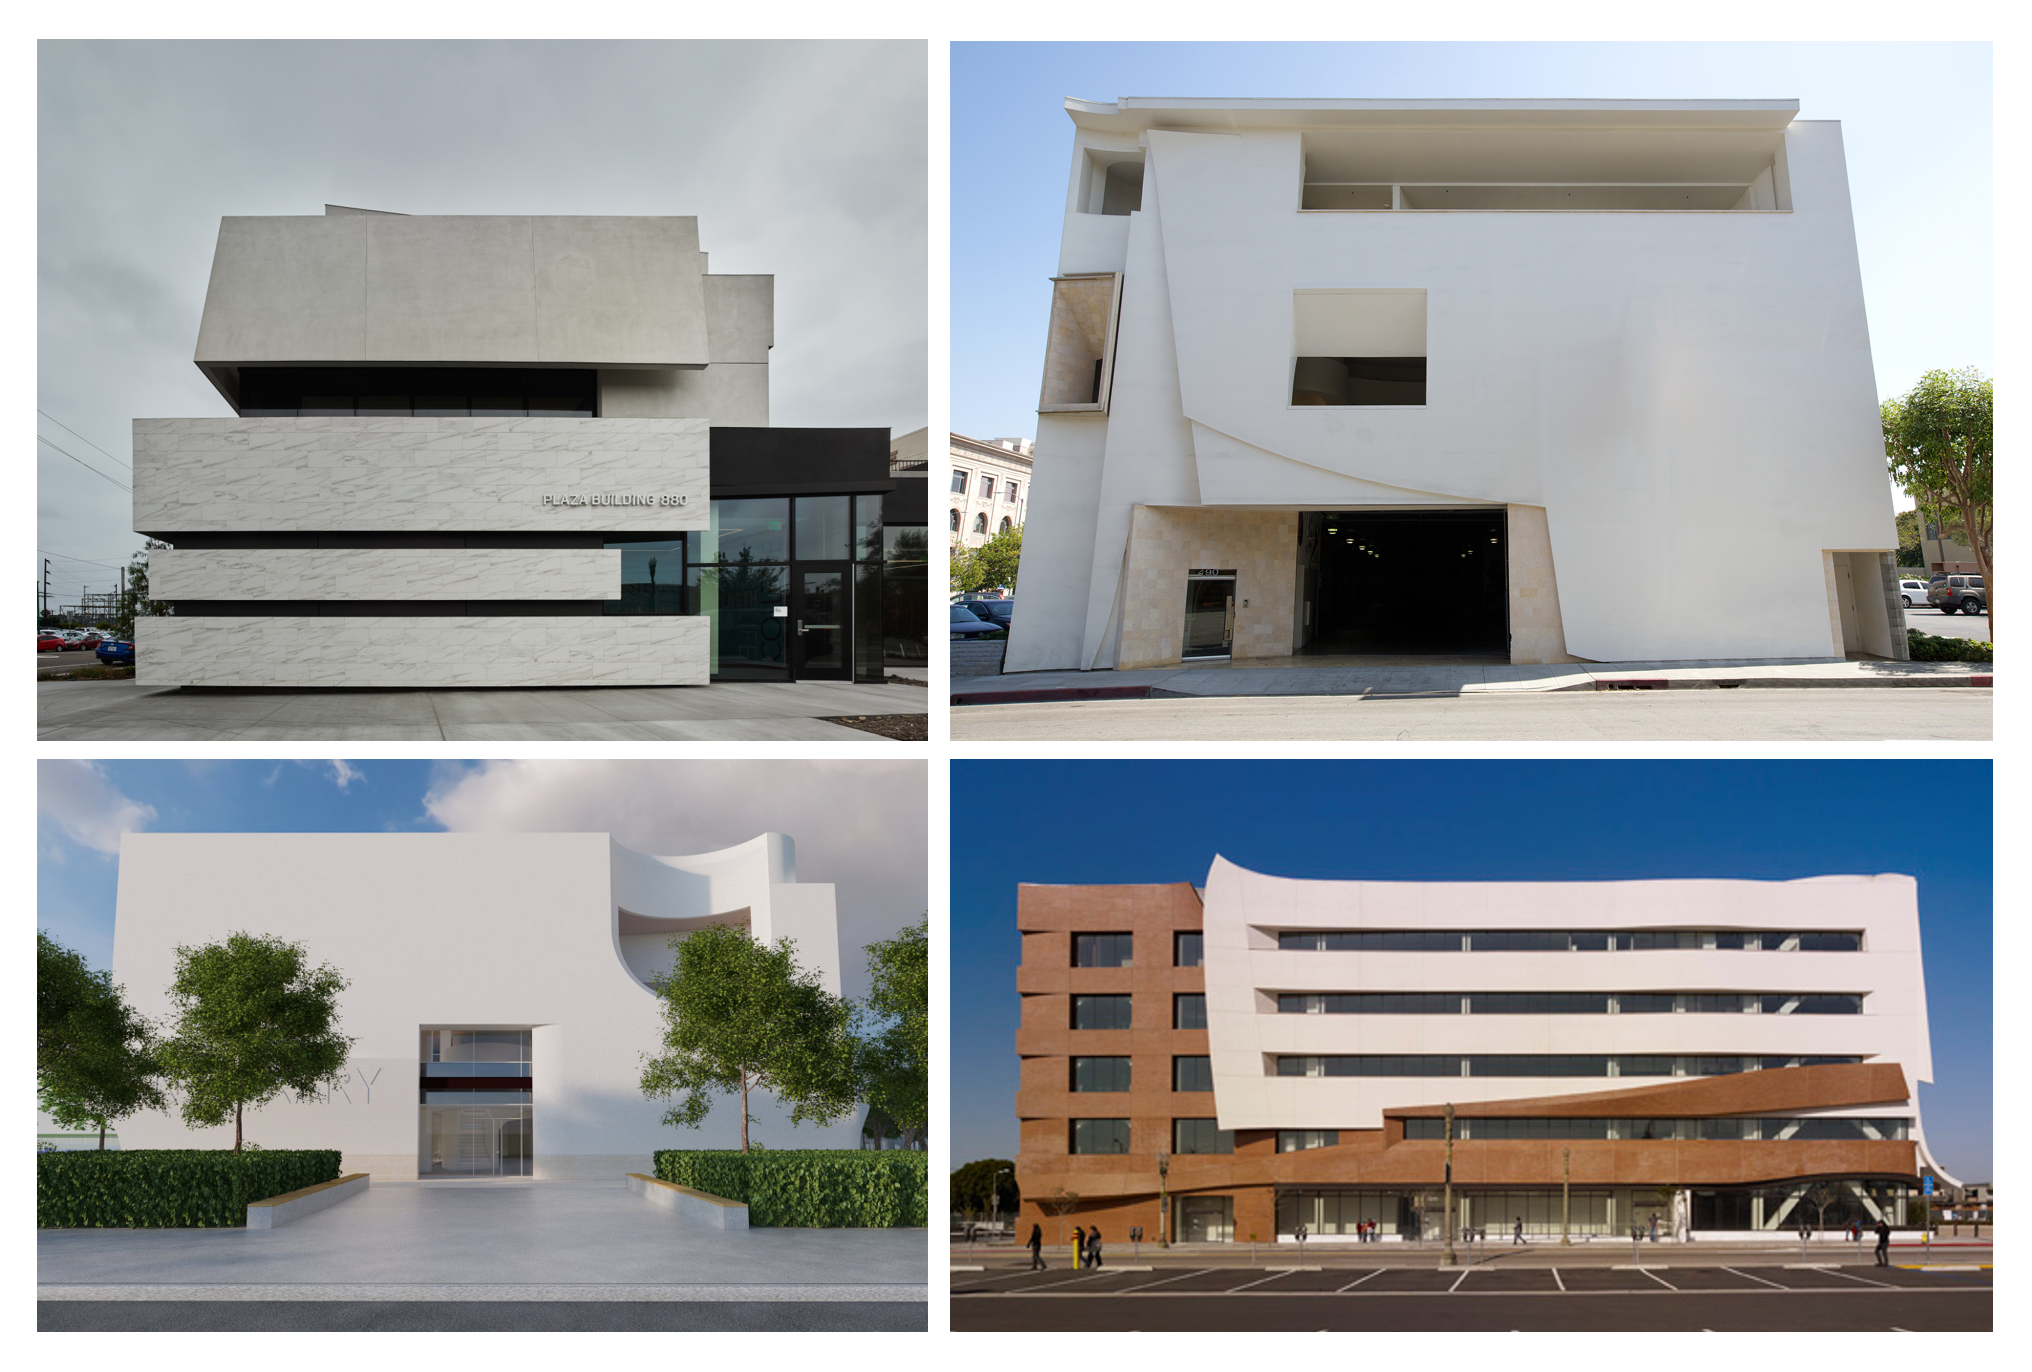 BUILDING LIKE IT MATTERS In an increasingly secular and cynical world some buildings—schools, libraries, civic, cultural and community institutions—still can (and should) be designed and built as if they matter. Clockwise from upper left: Southwest College Allied Health Sciences Building, Pasadena Museum of California Art, LATTC Technology Building, Costa Mesa Library.